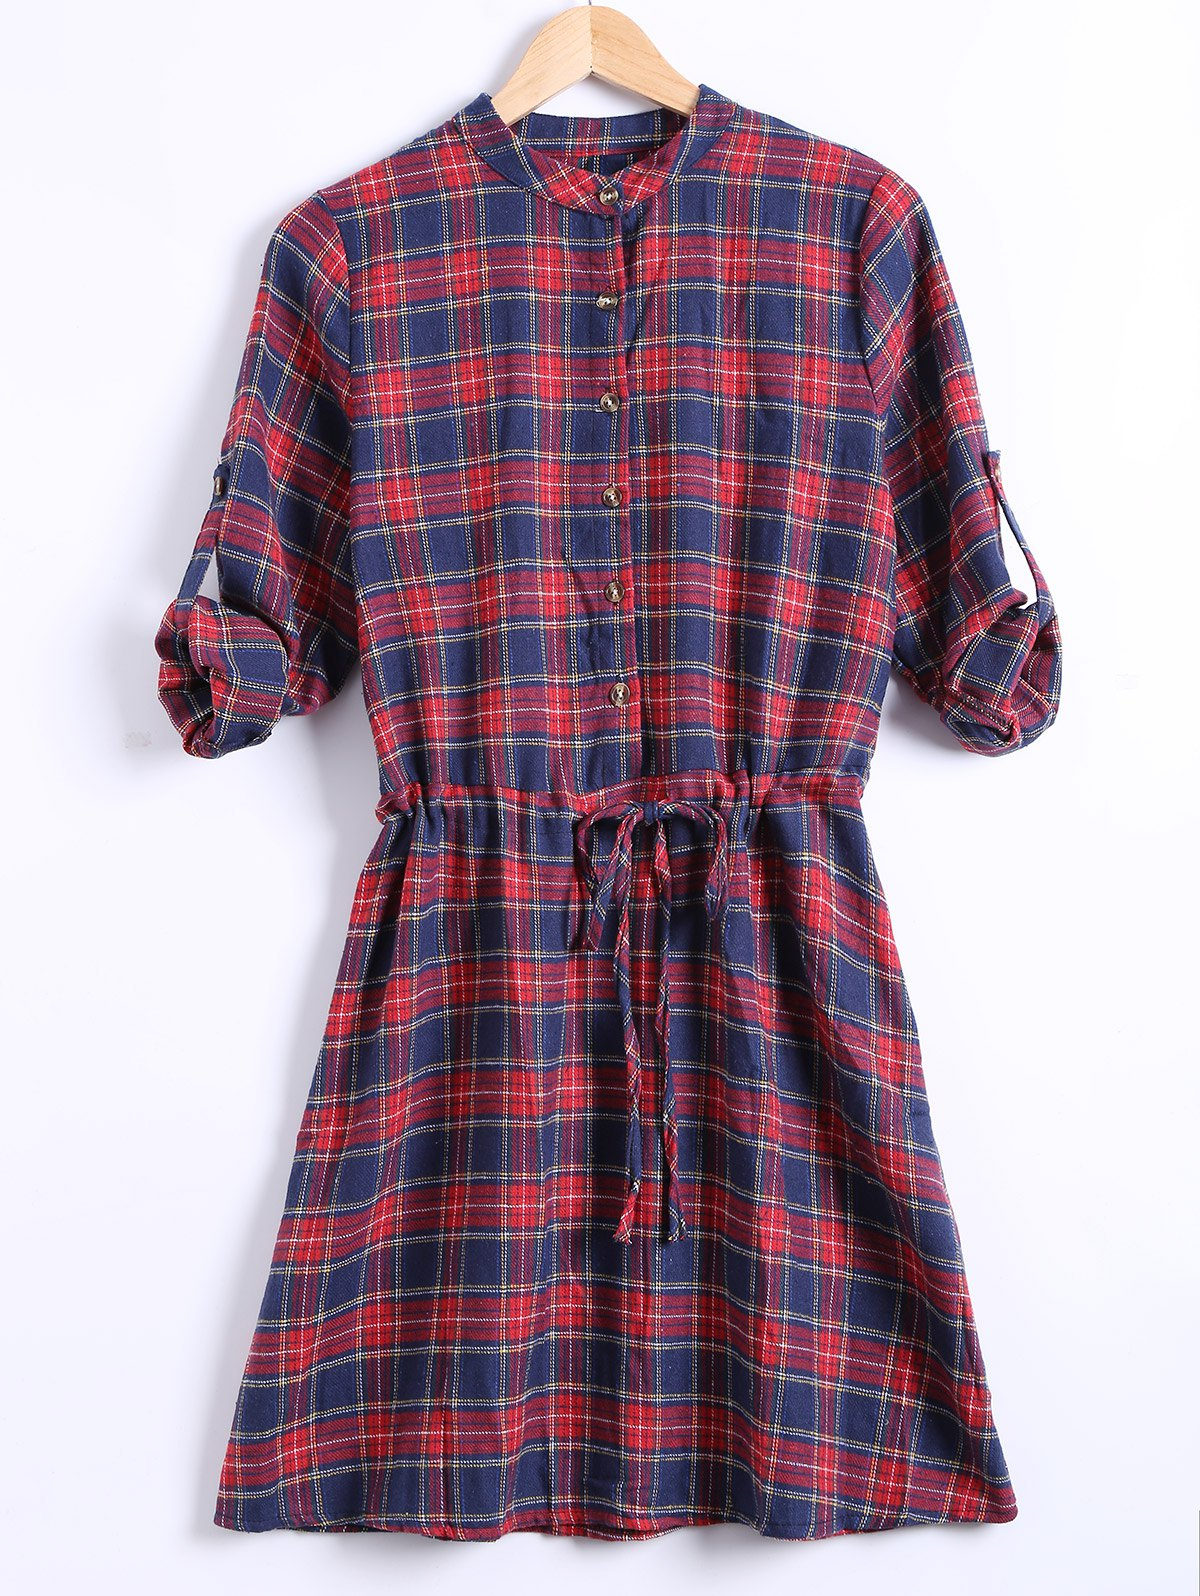 Stand Collar Checkered Print Drawstring Shirt DressWomen<br><br><br>Size: 2XL<br>Color: RED